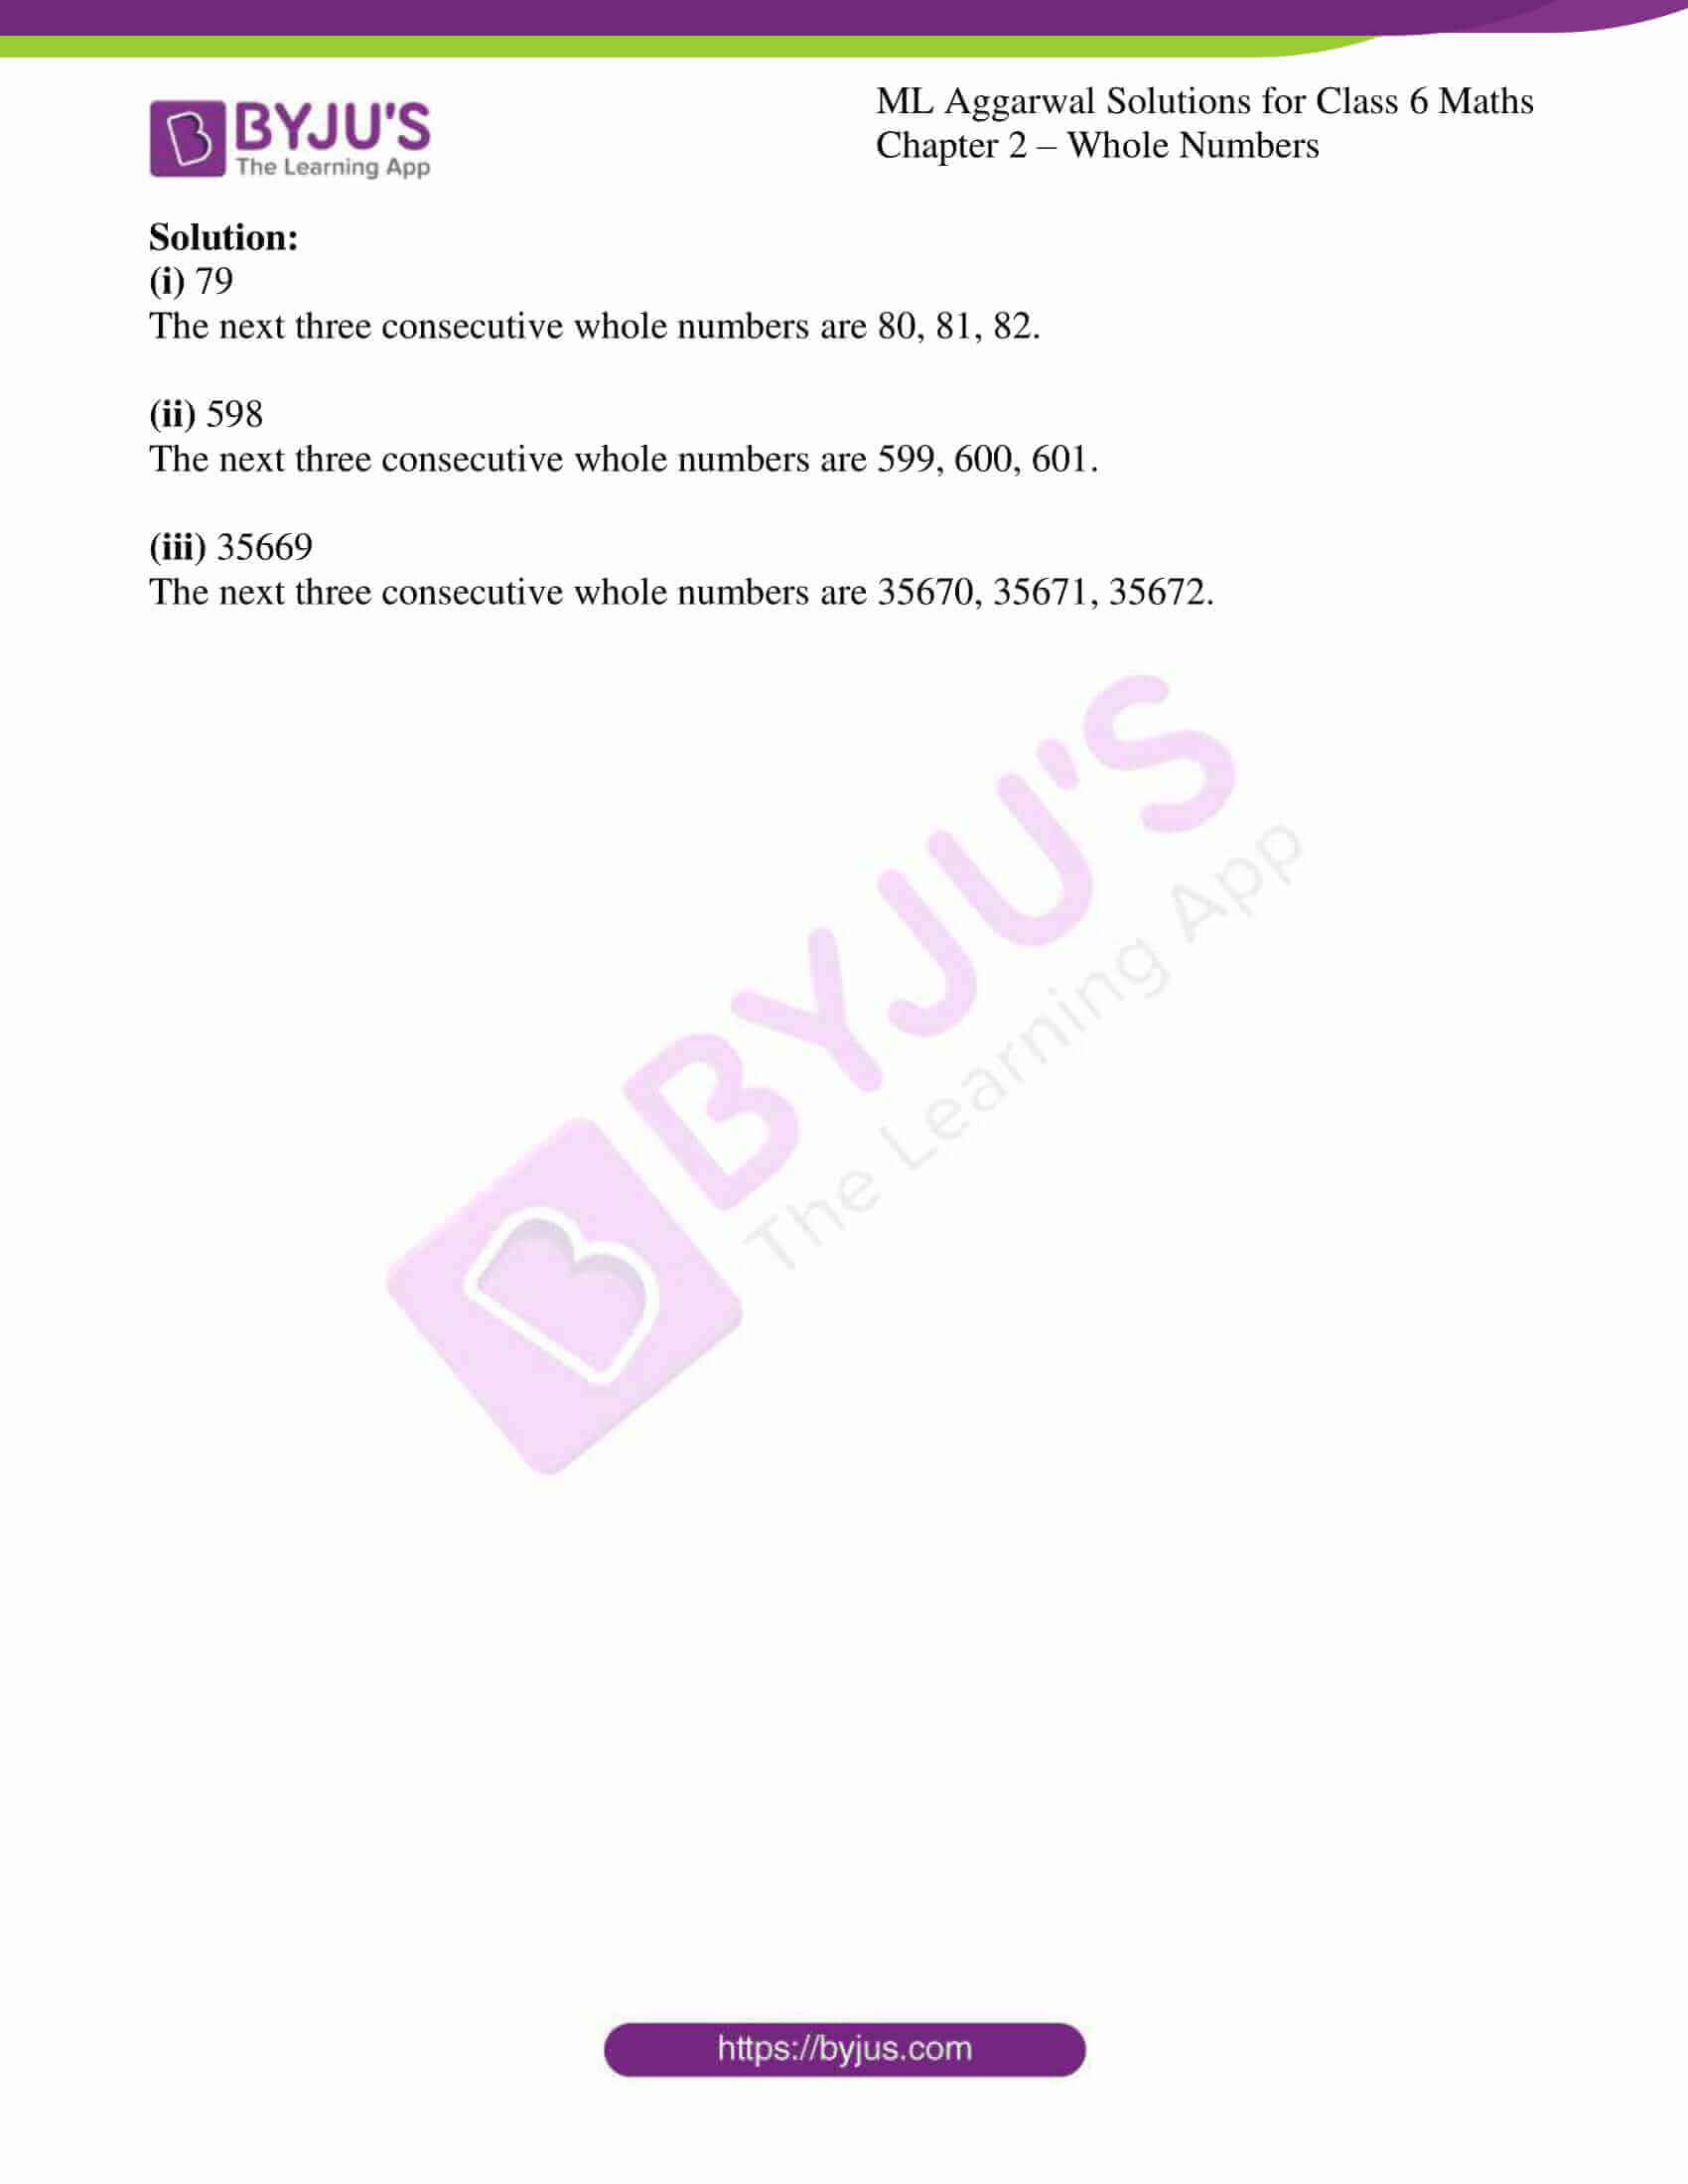 ml aggarwal solutions for class 6 maths chapter 2 3